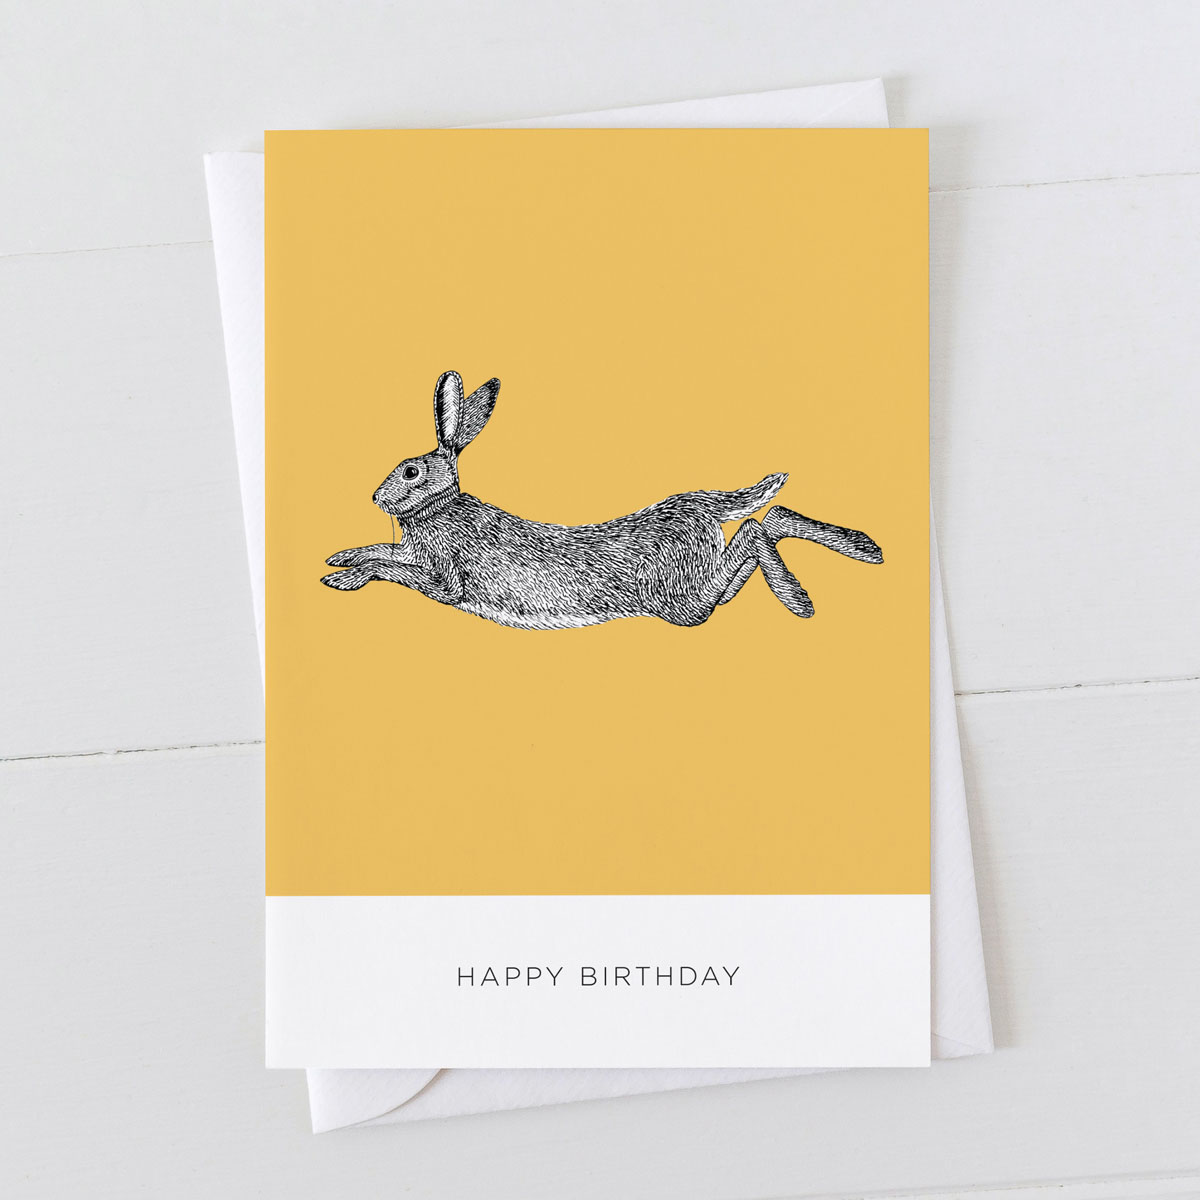 Hare Happy Birthday Illustration Greeting Card